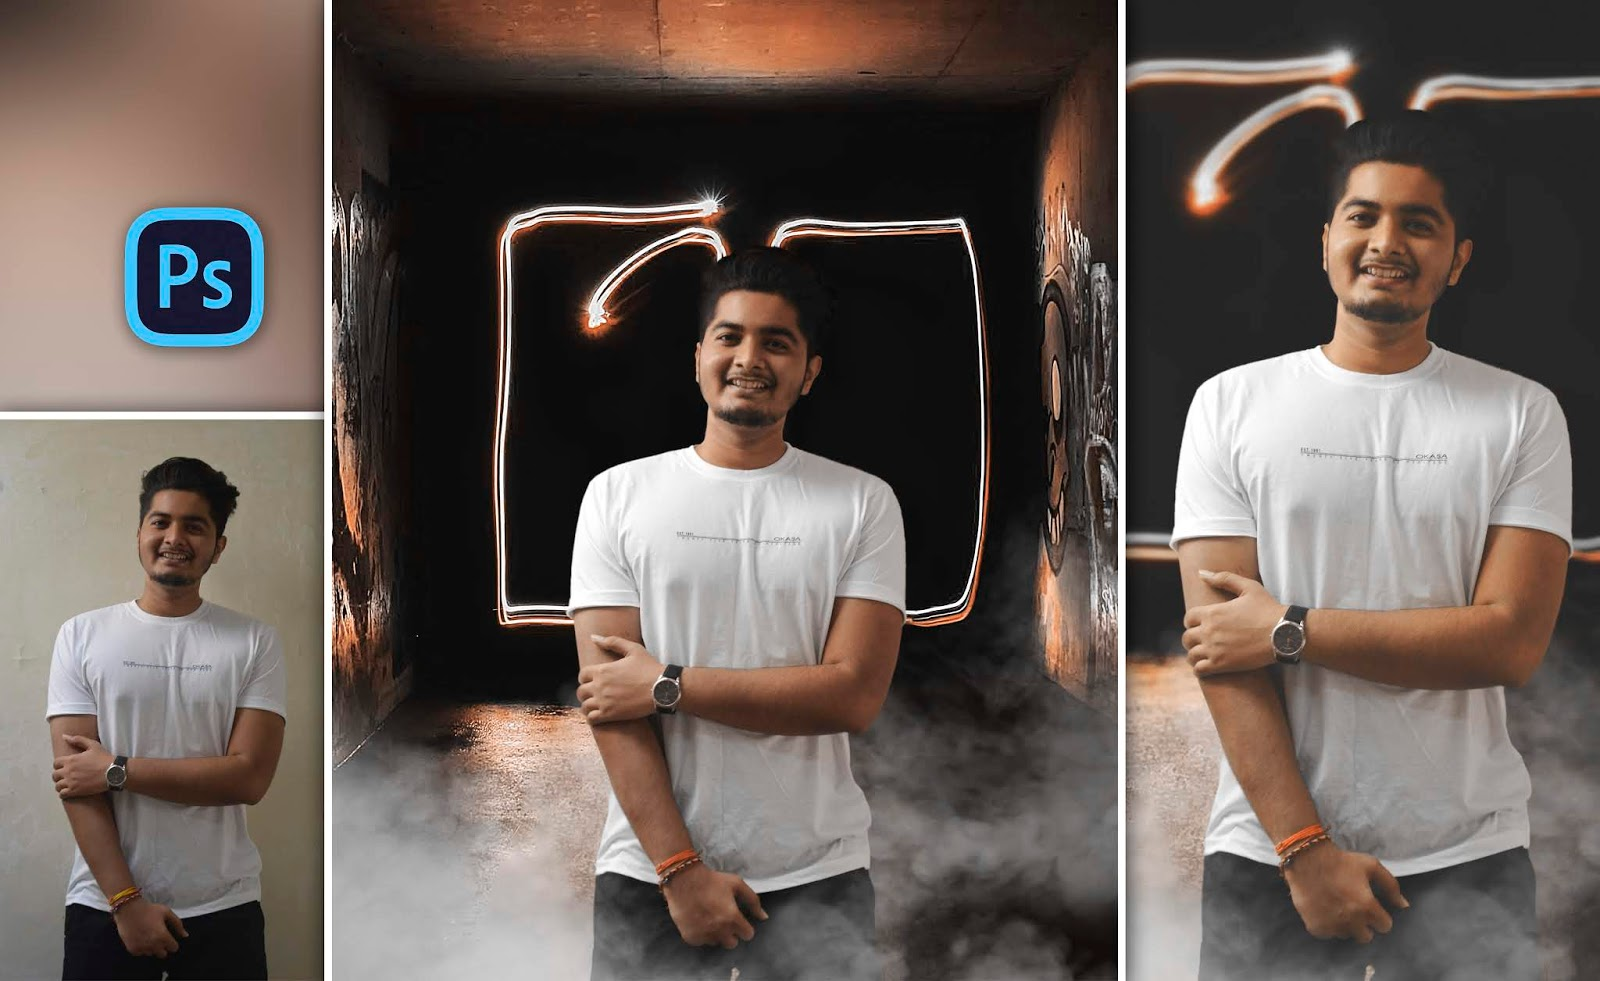 How to Create Neon Lights Photo Manipulation Like Danish Zehen in Photoshop cc